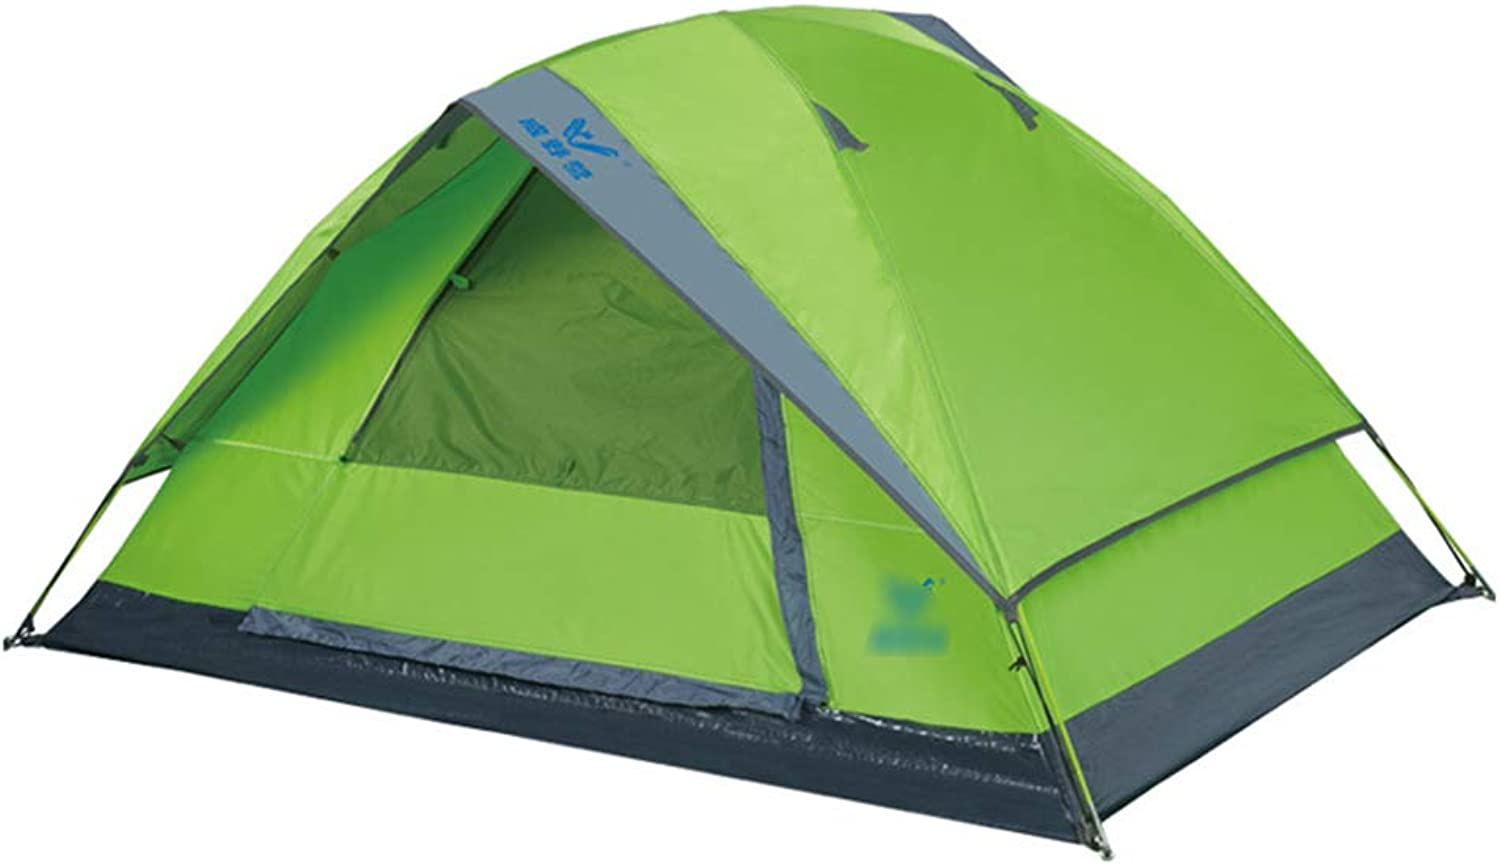 Tents Tents for Camping Coleman Tent Outdoor Tent Double Camping Windproof Rainproof Tent Wild Light Portable Tent (color   Green, Size   200  140  105CM)